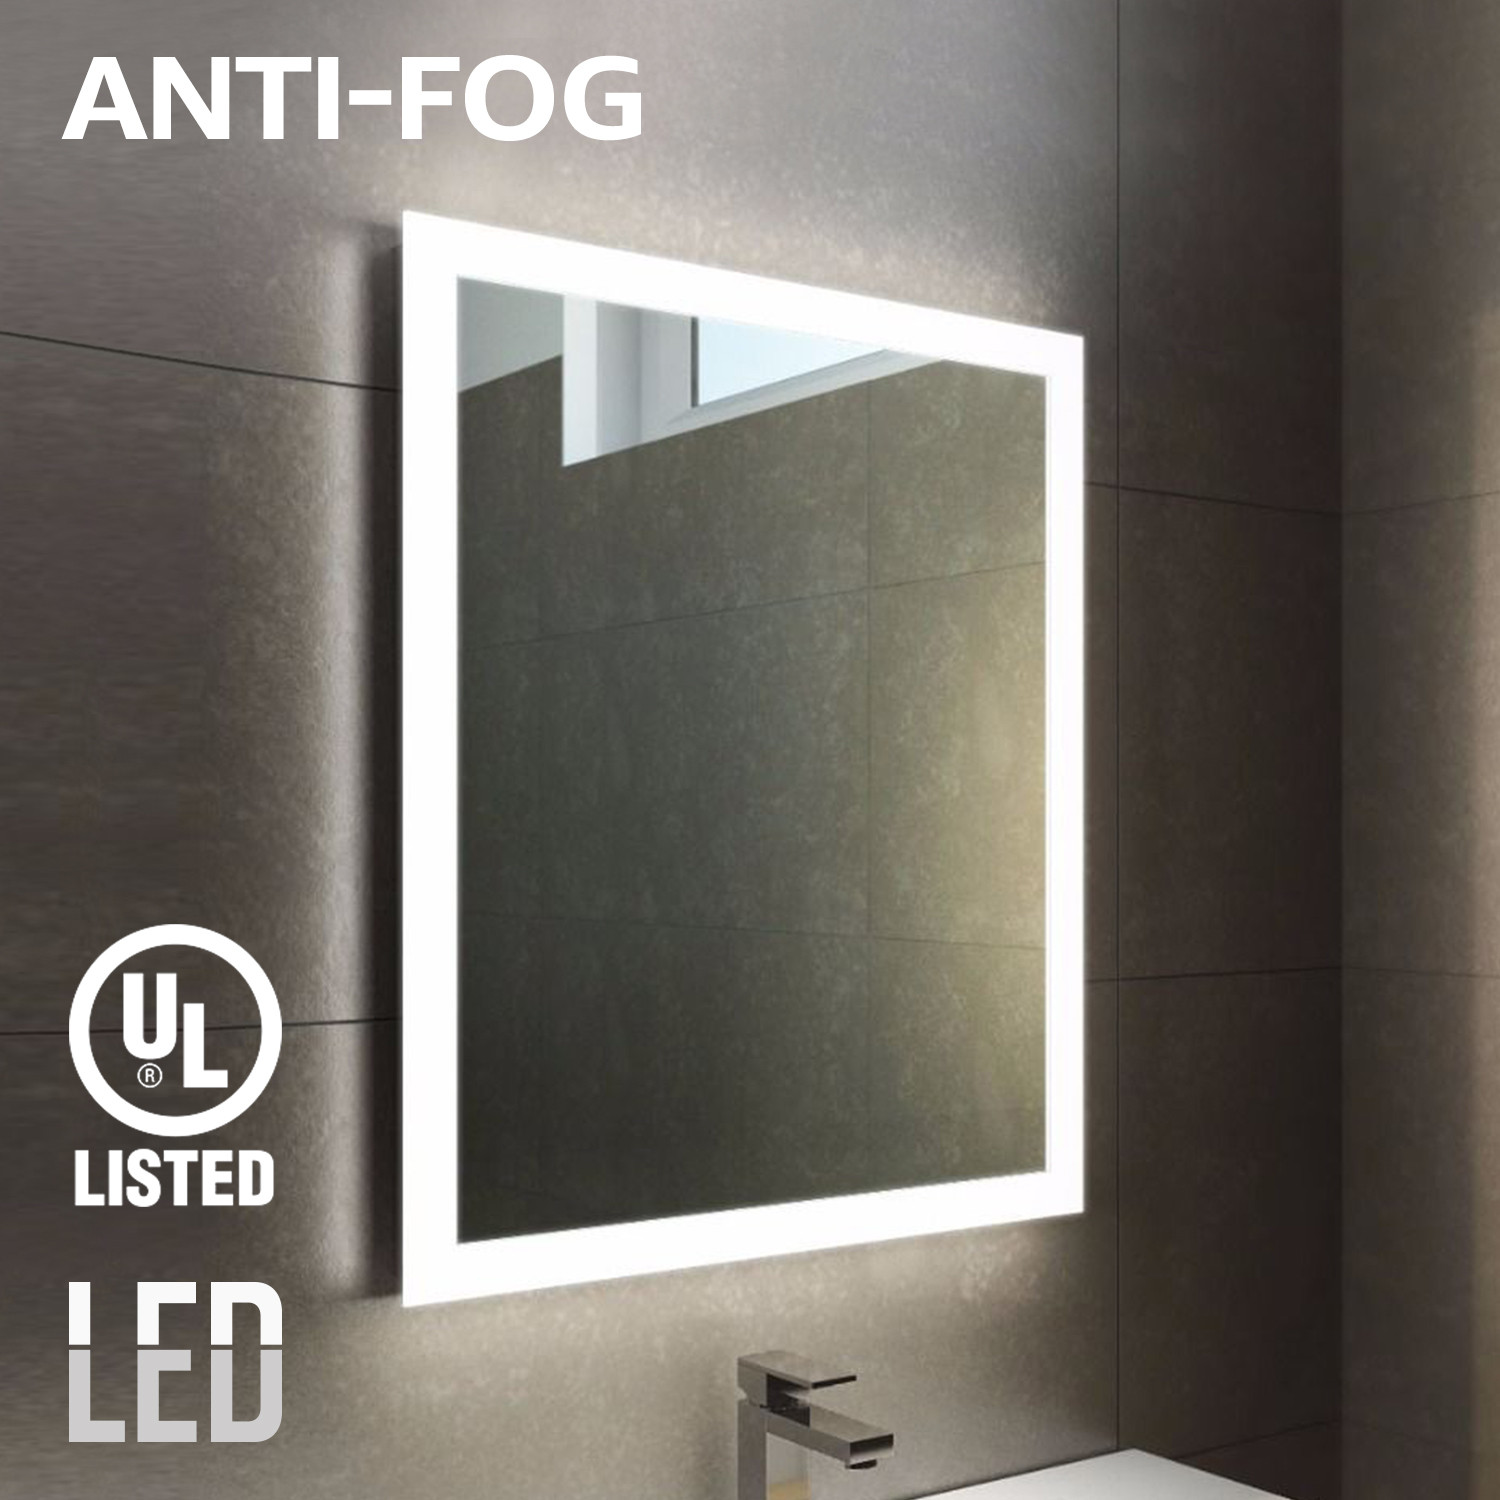 Anti-fogging mirror with LED Light, Makeup Mirror, Wall Mounted Vanity Silver Mirror for Bathroom, Exterior Strips